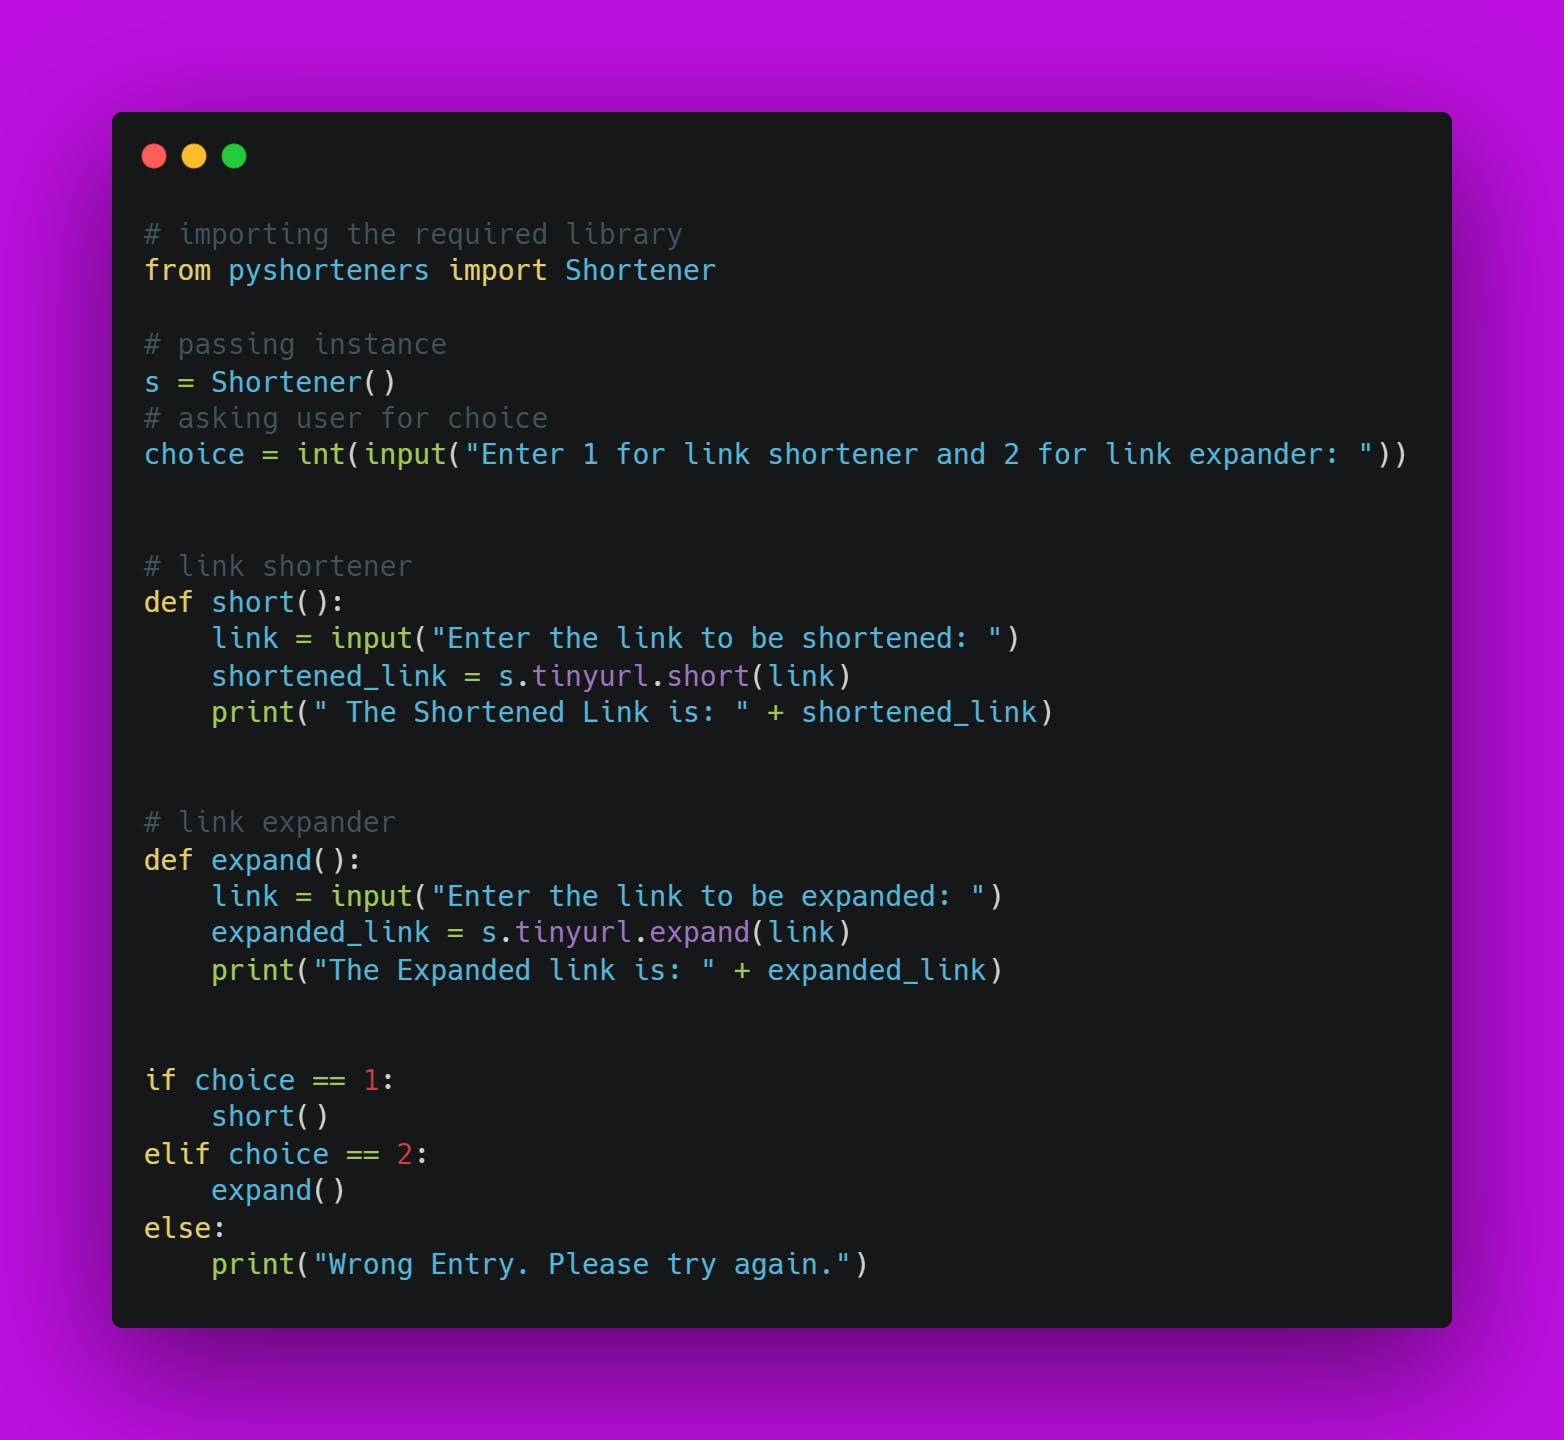 The Final Source Code for URL Shortener and Expander